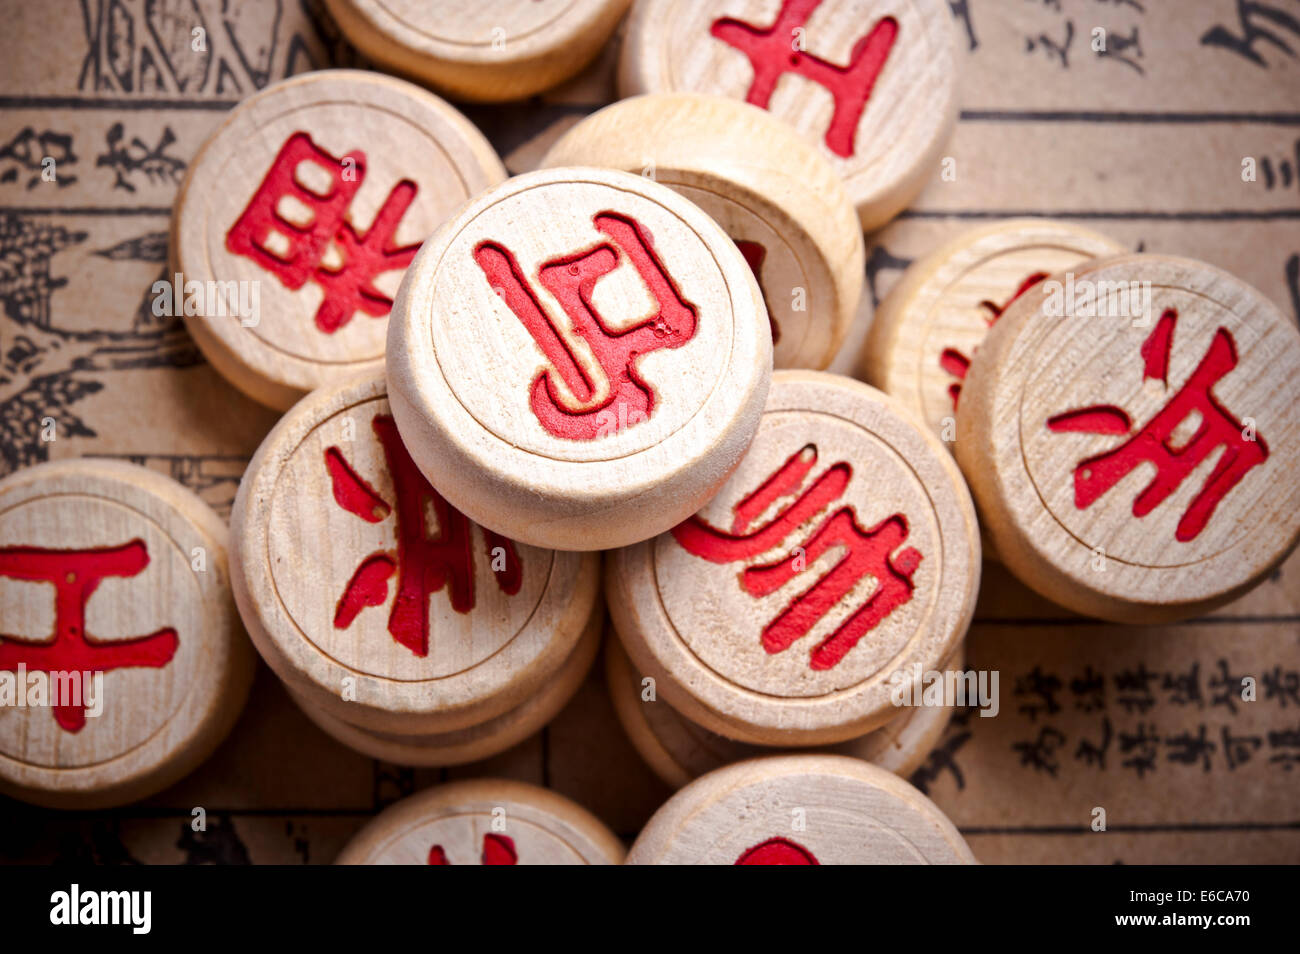 pieces for chinese chess or xiangqi - Stock Image